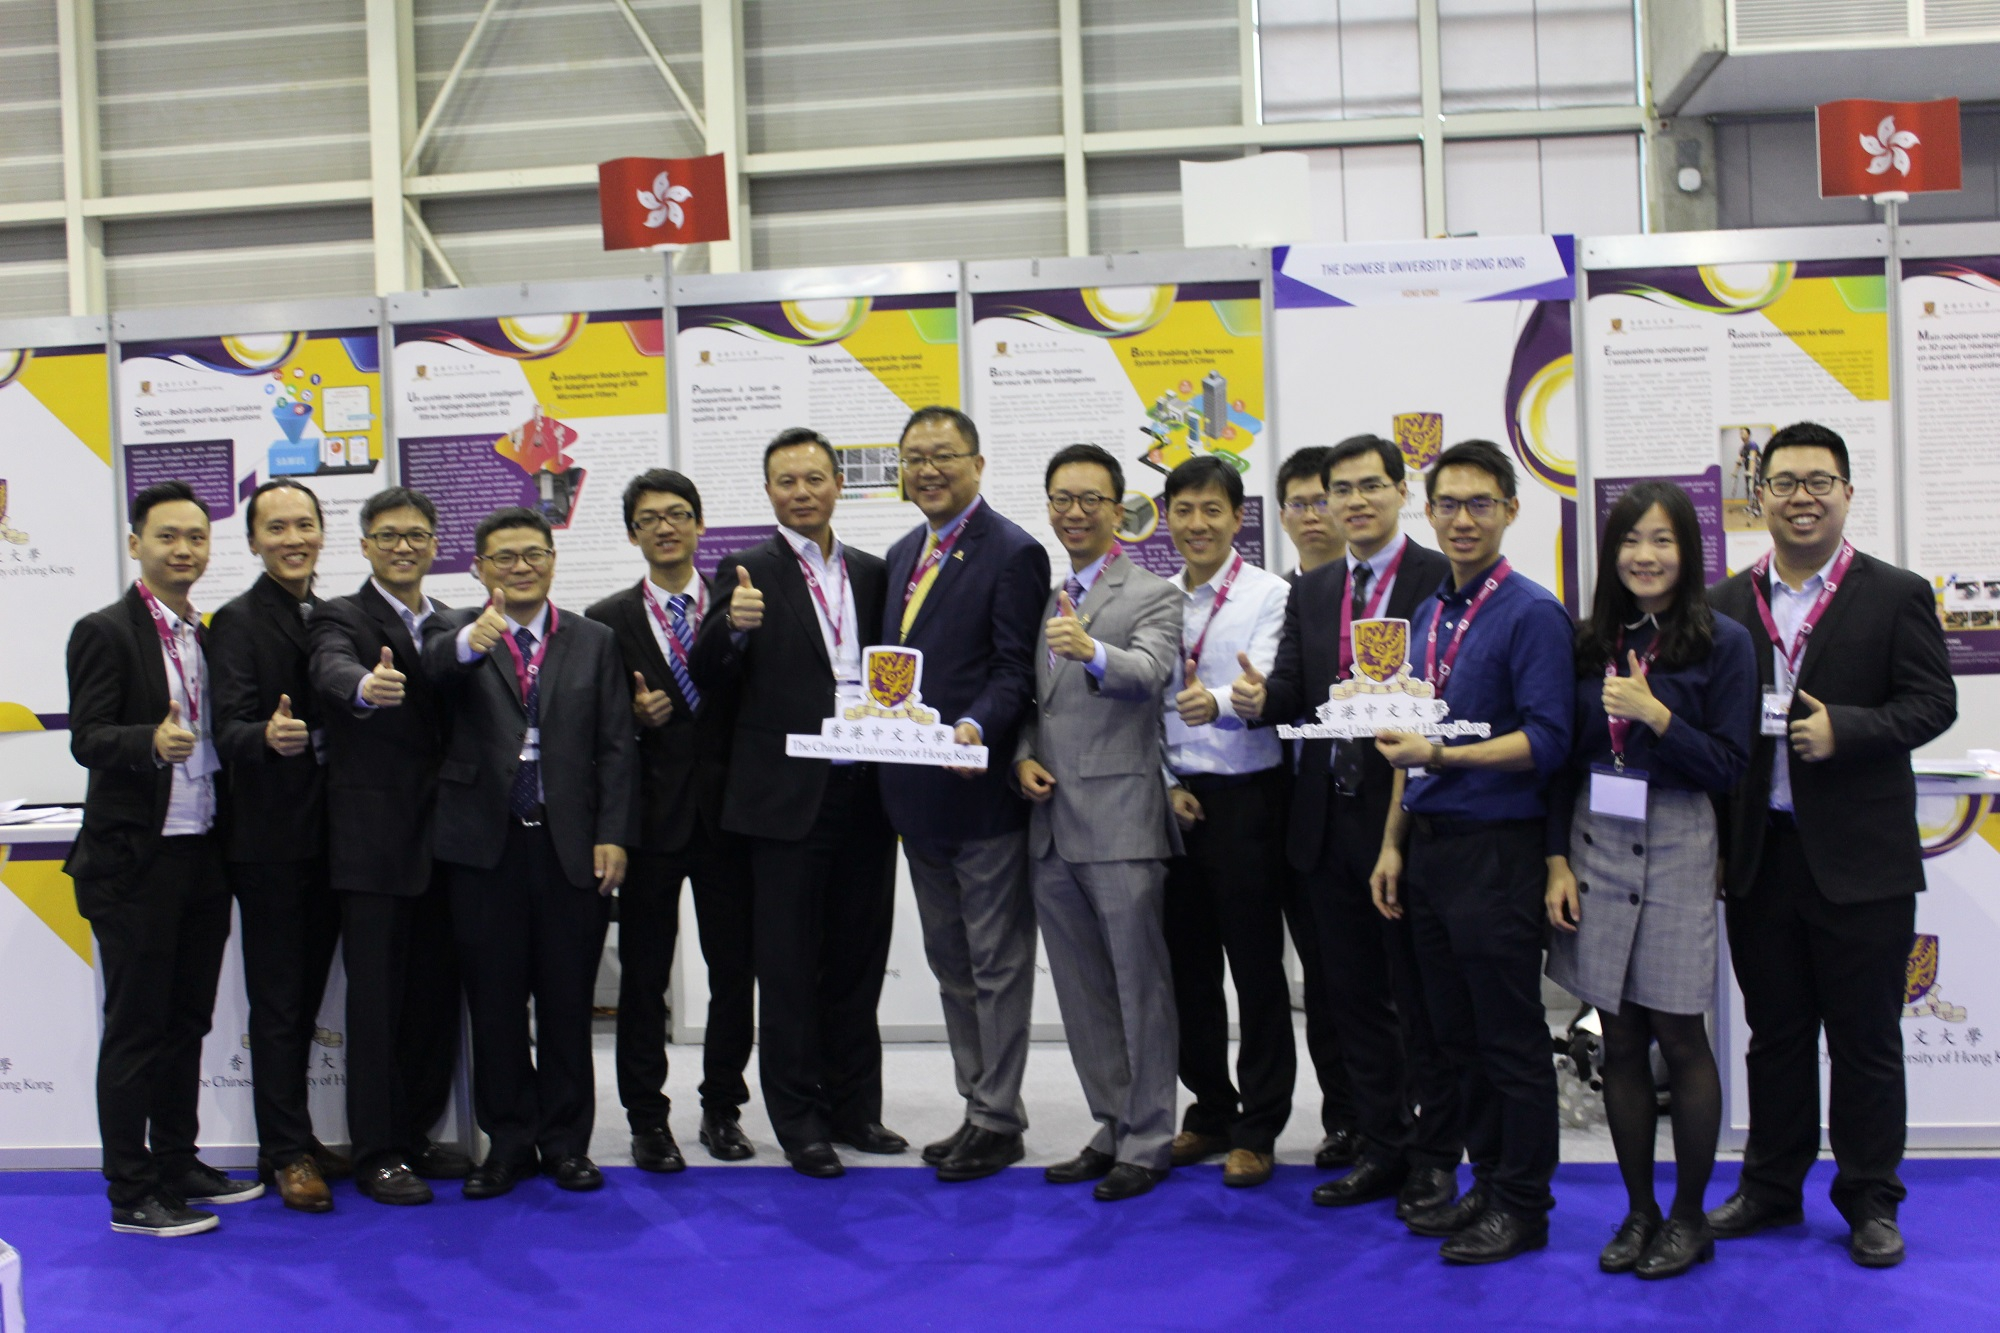 CUHK researchers attending the 47th International Exhibition of Inventions of Geneva